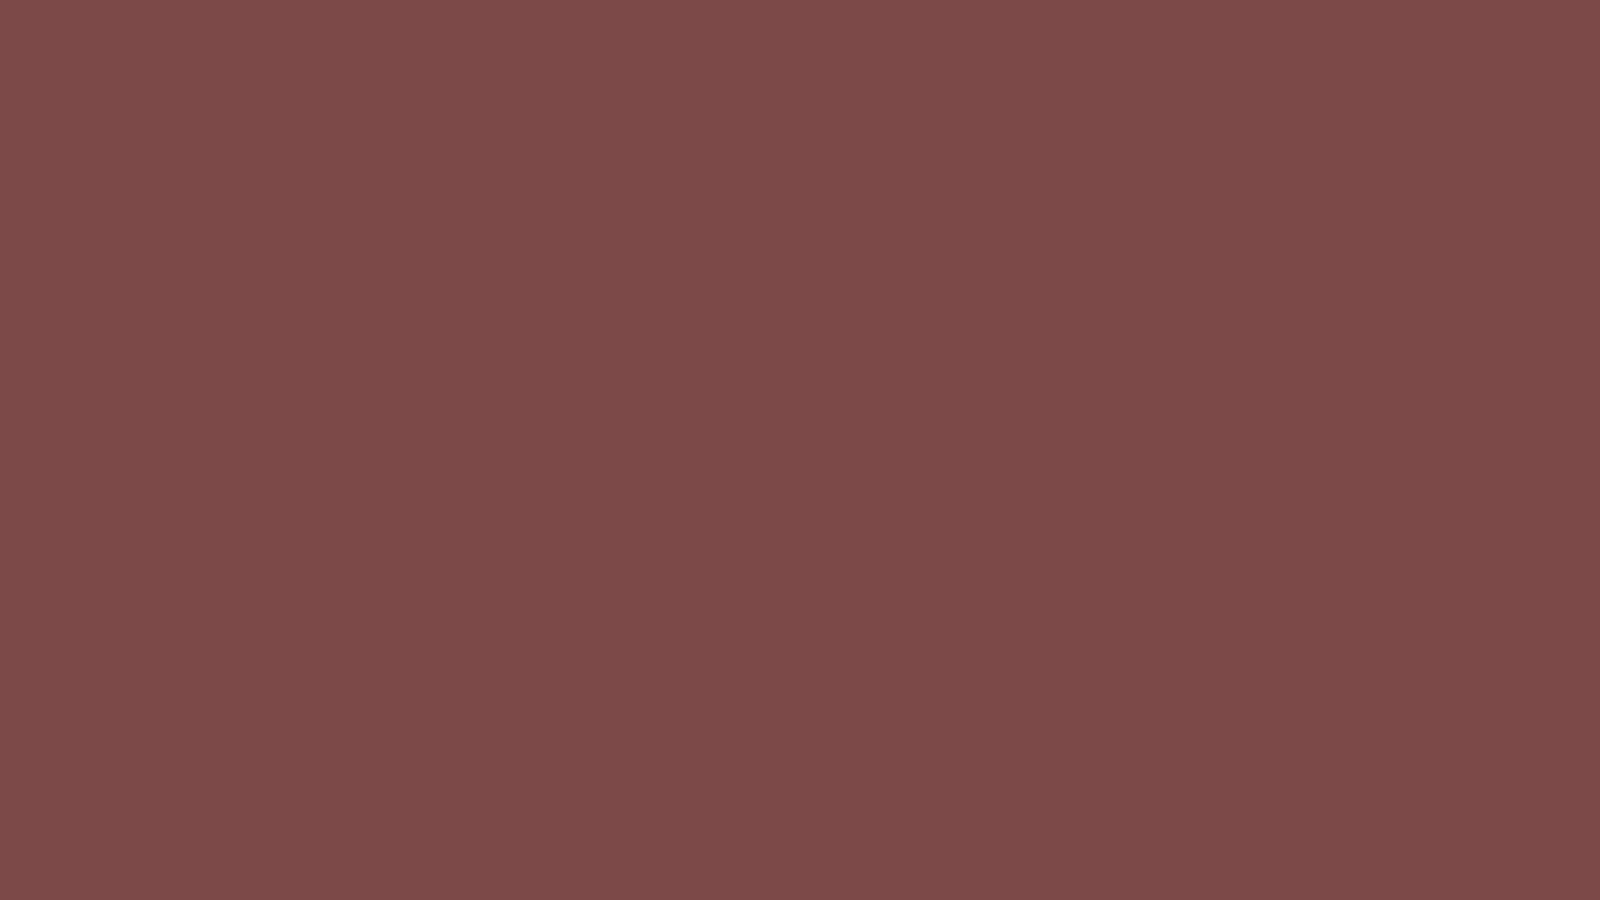 1600x900 Tuscan Red Solid Color Background